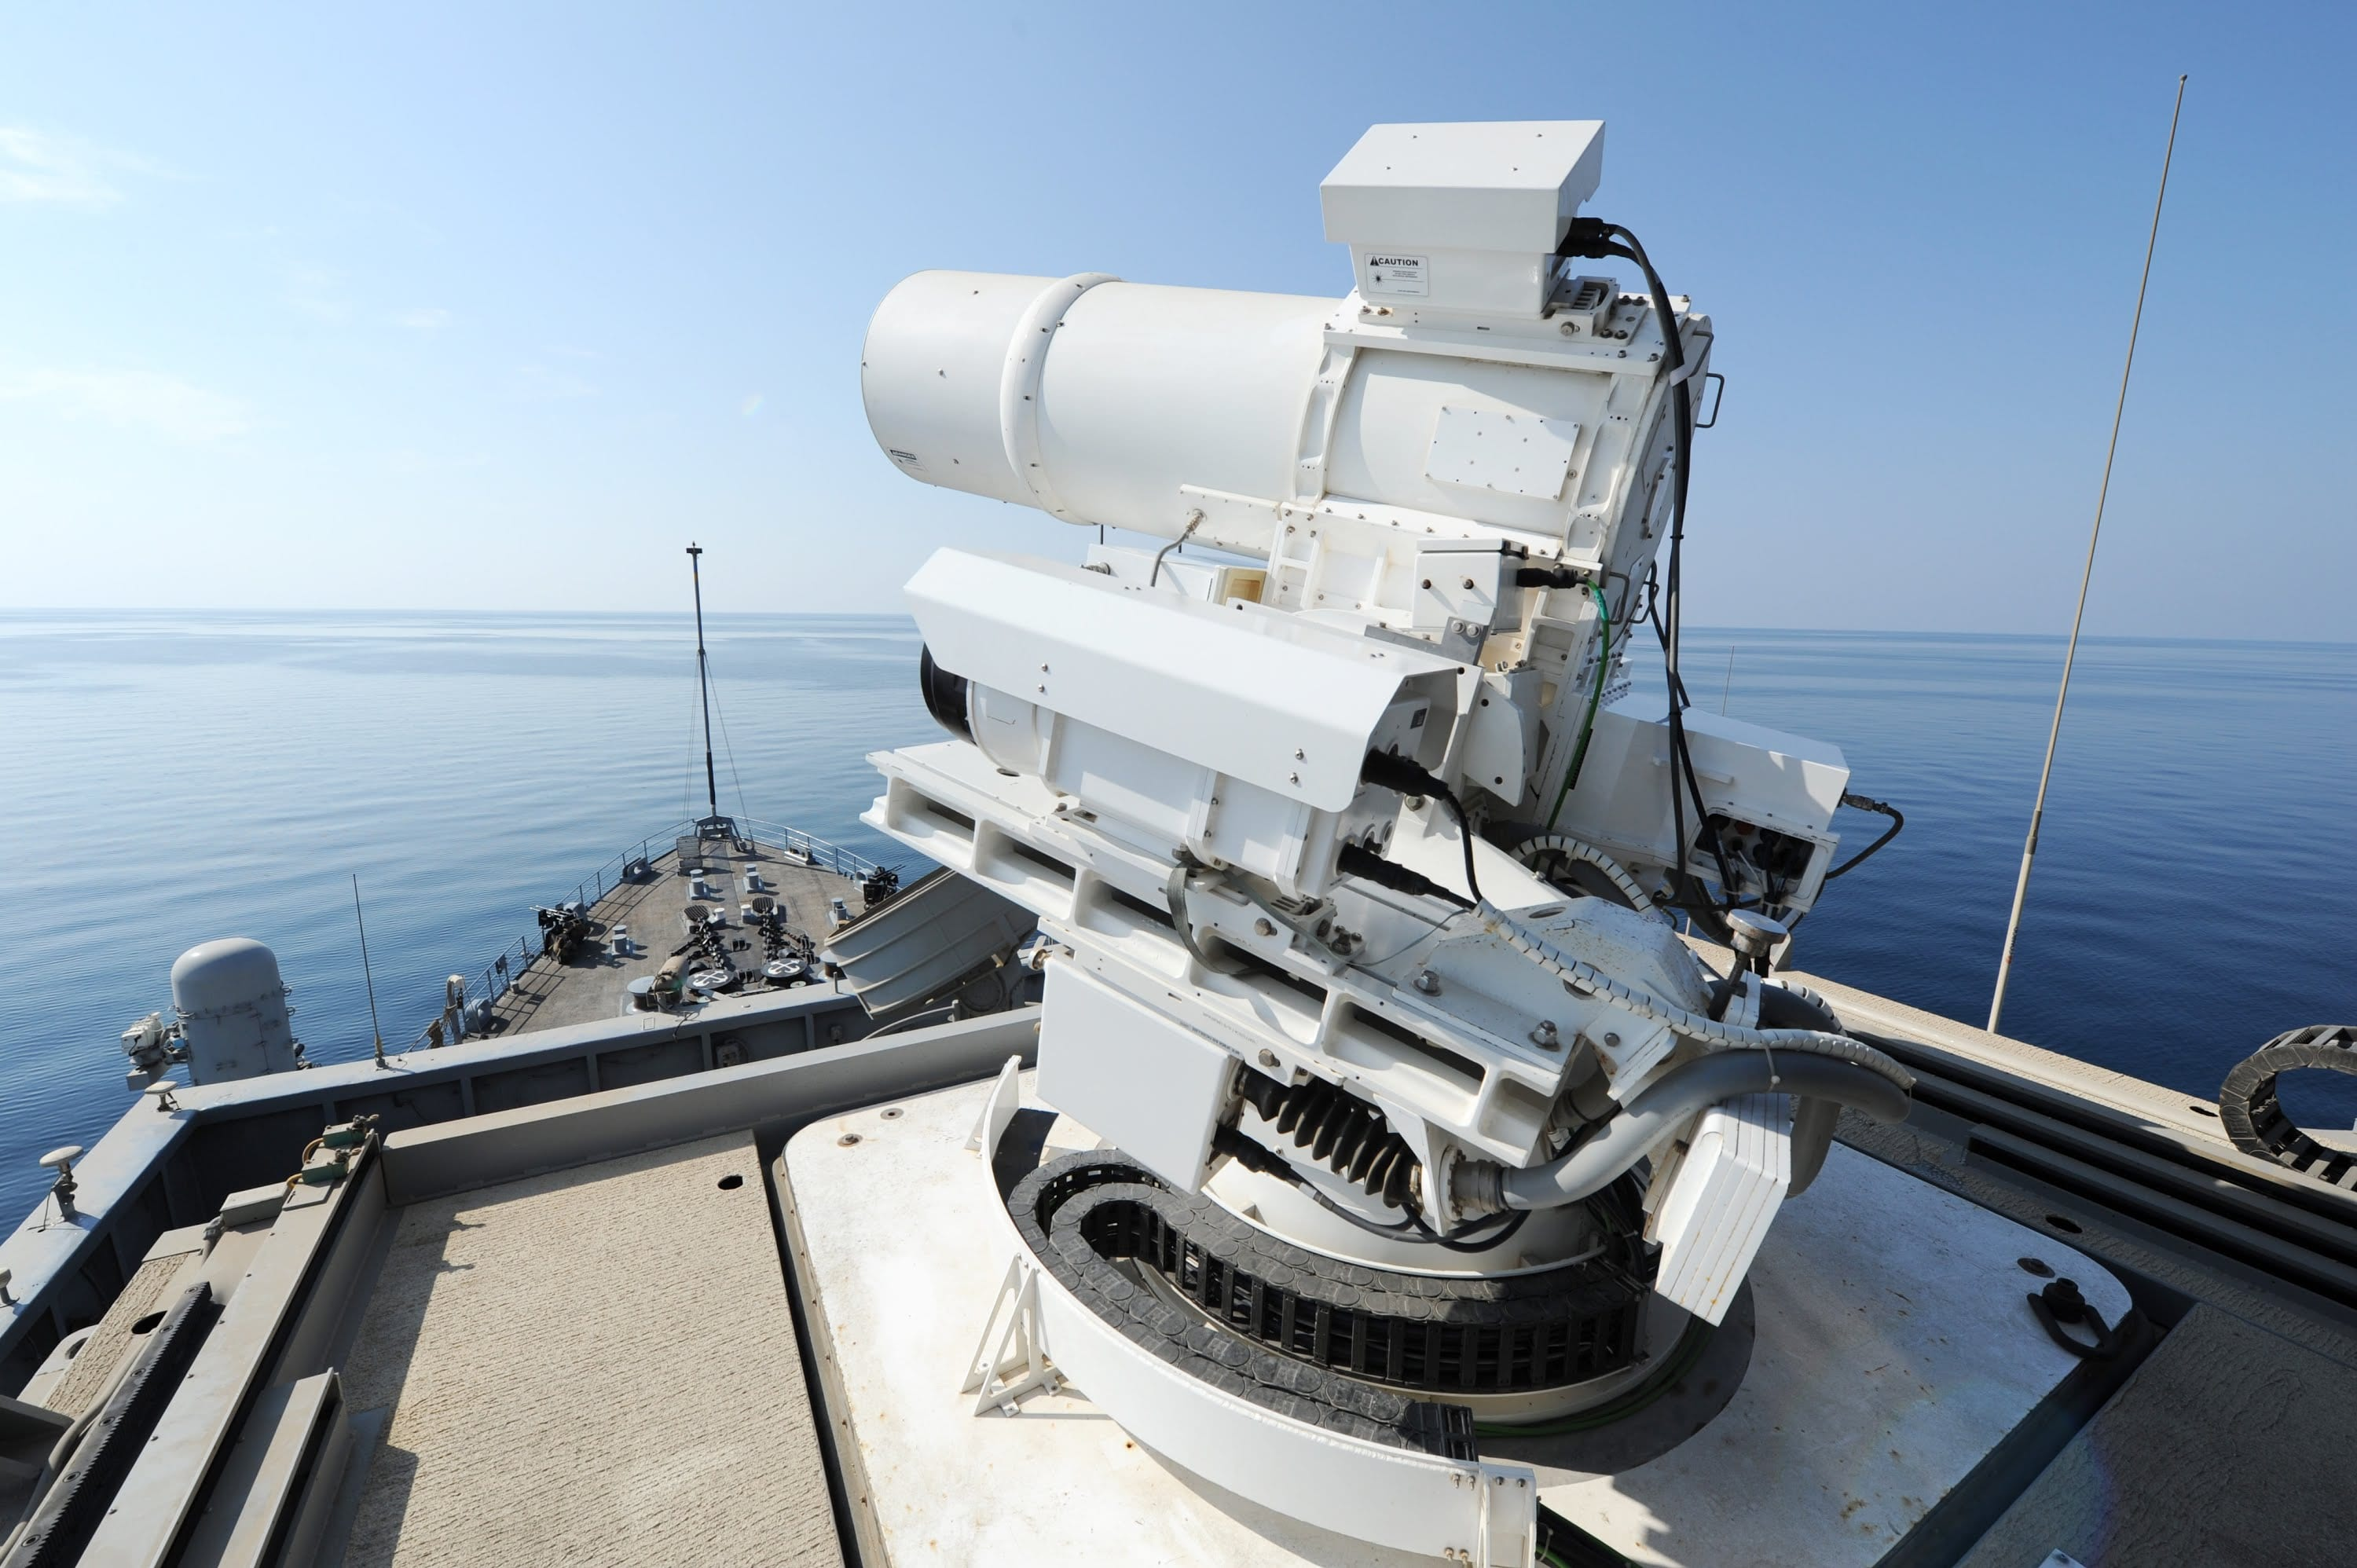 Image U.S. Navy's Laser Weapon System